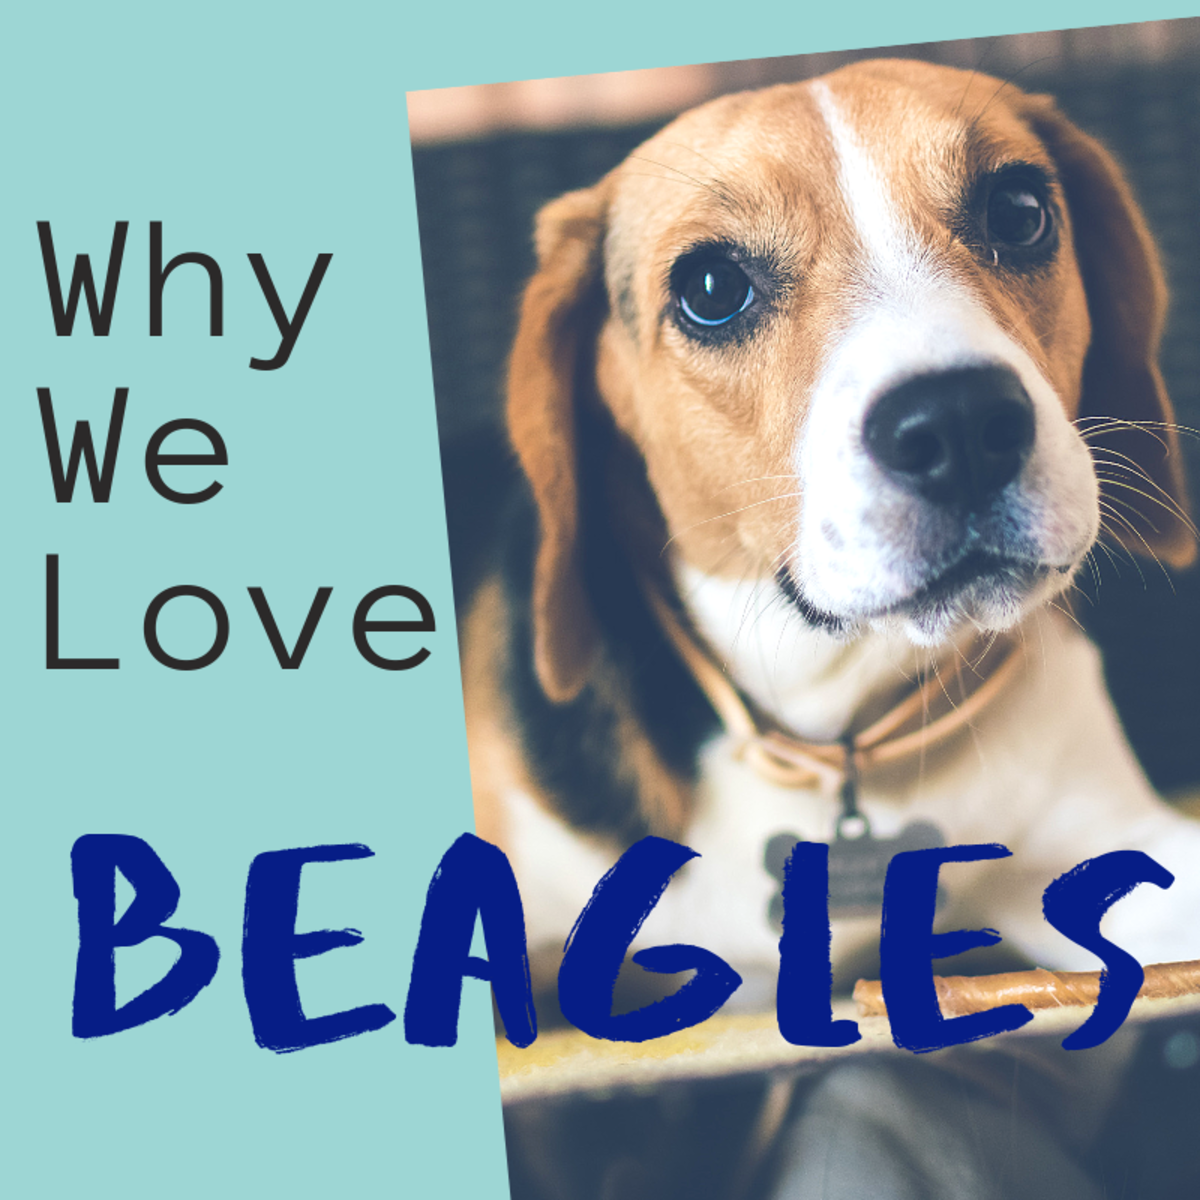 5 Reasons Why Beagles Are Perfect